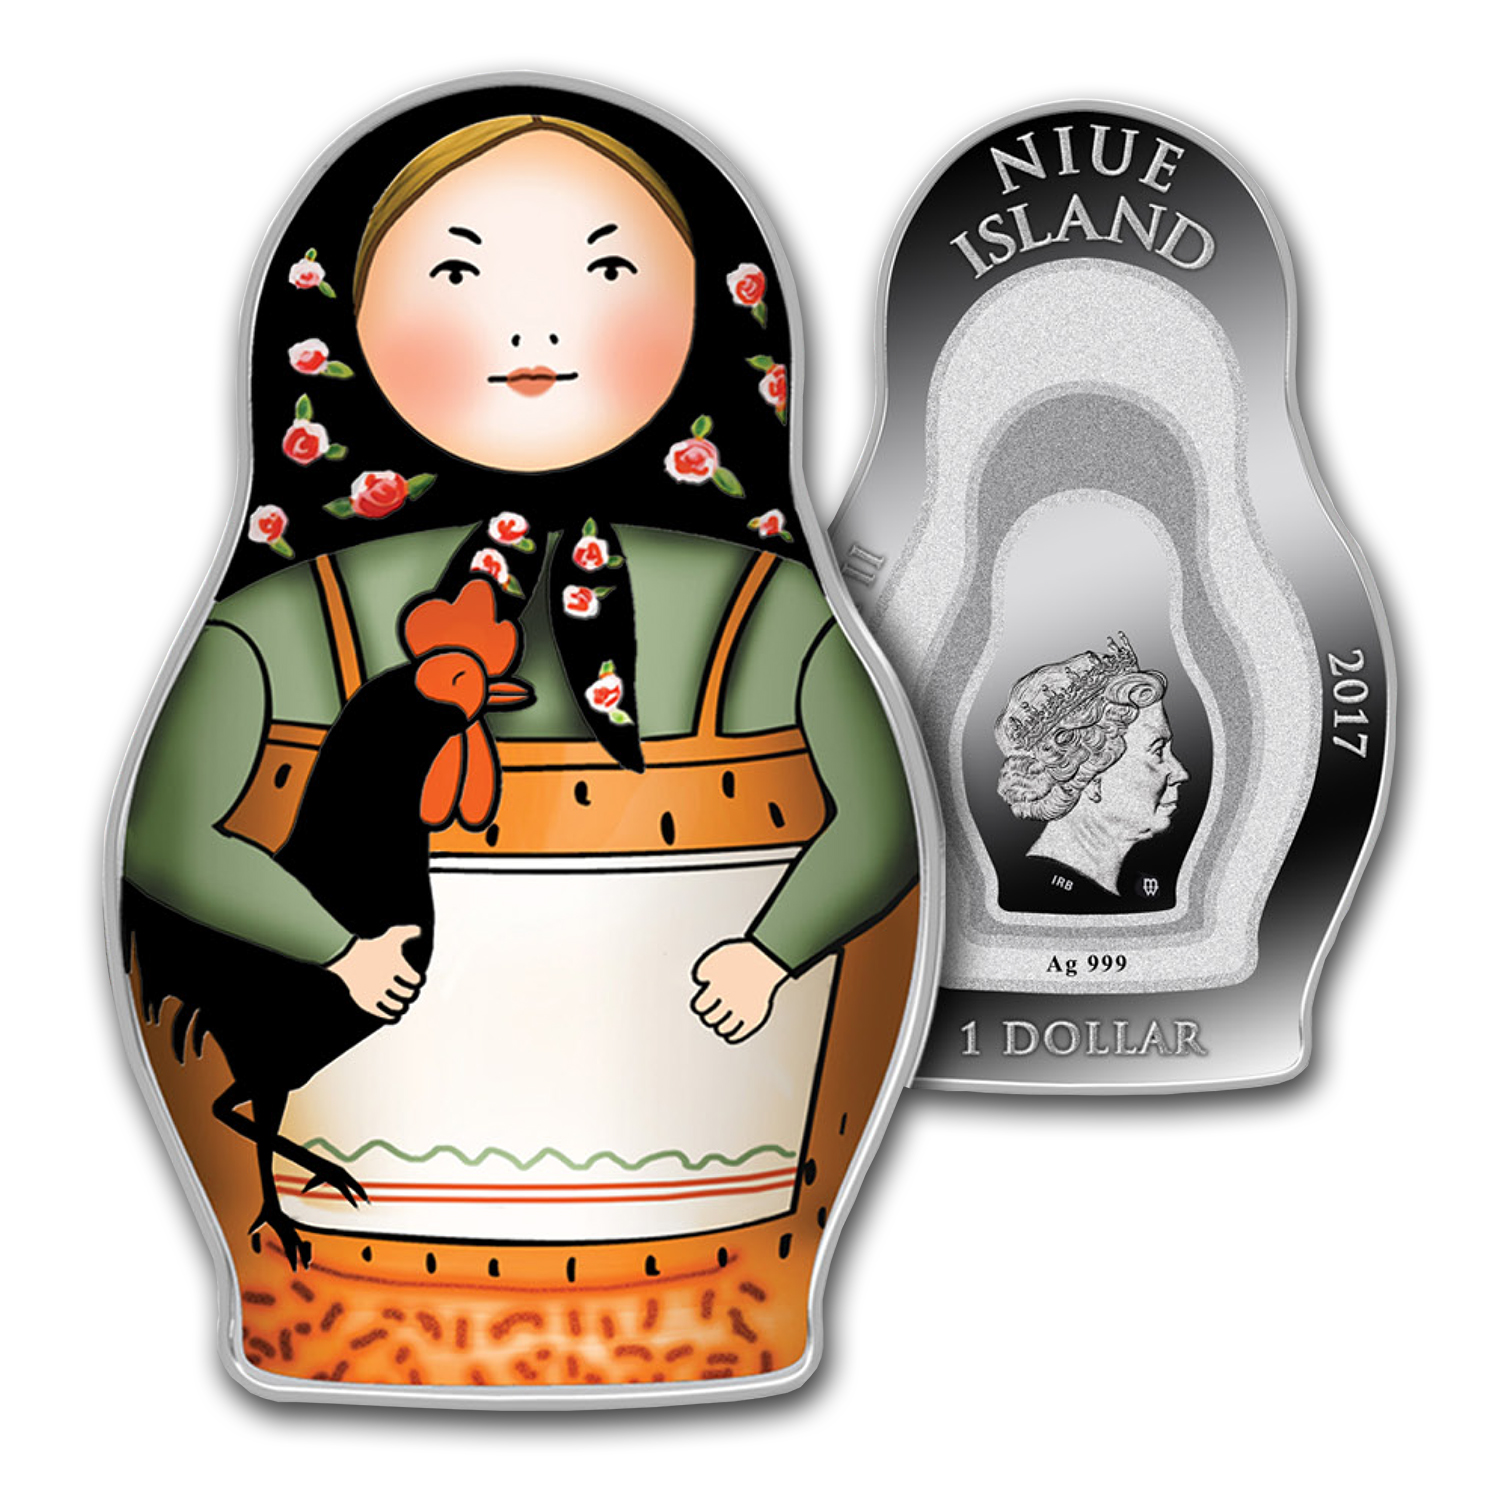 2017 Niue 1 oz Silver Proof Matryoshka Doll